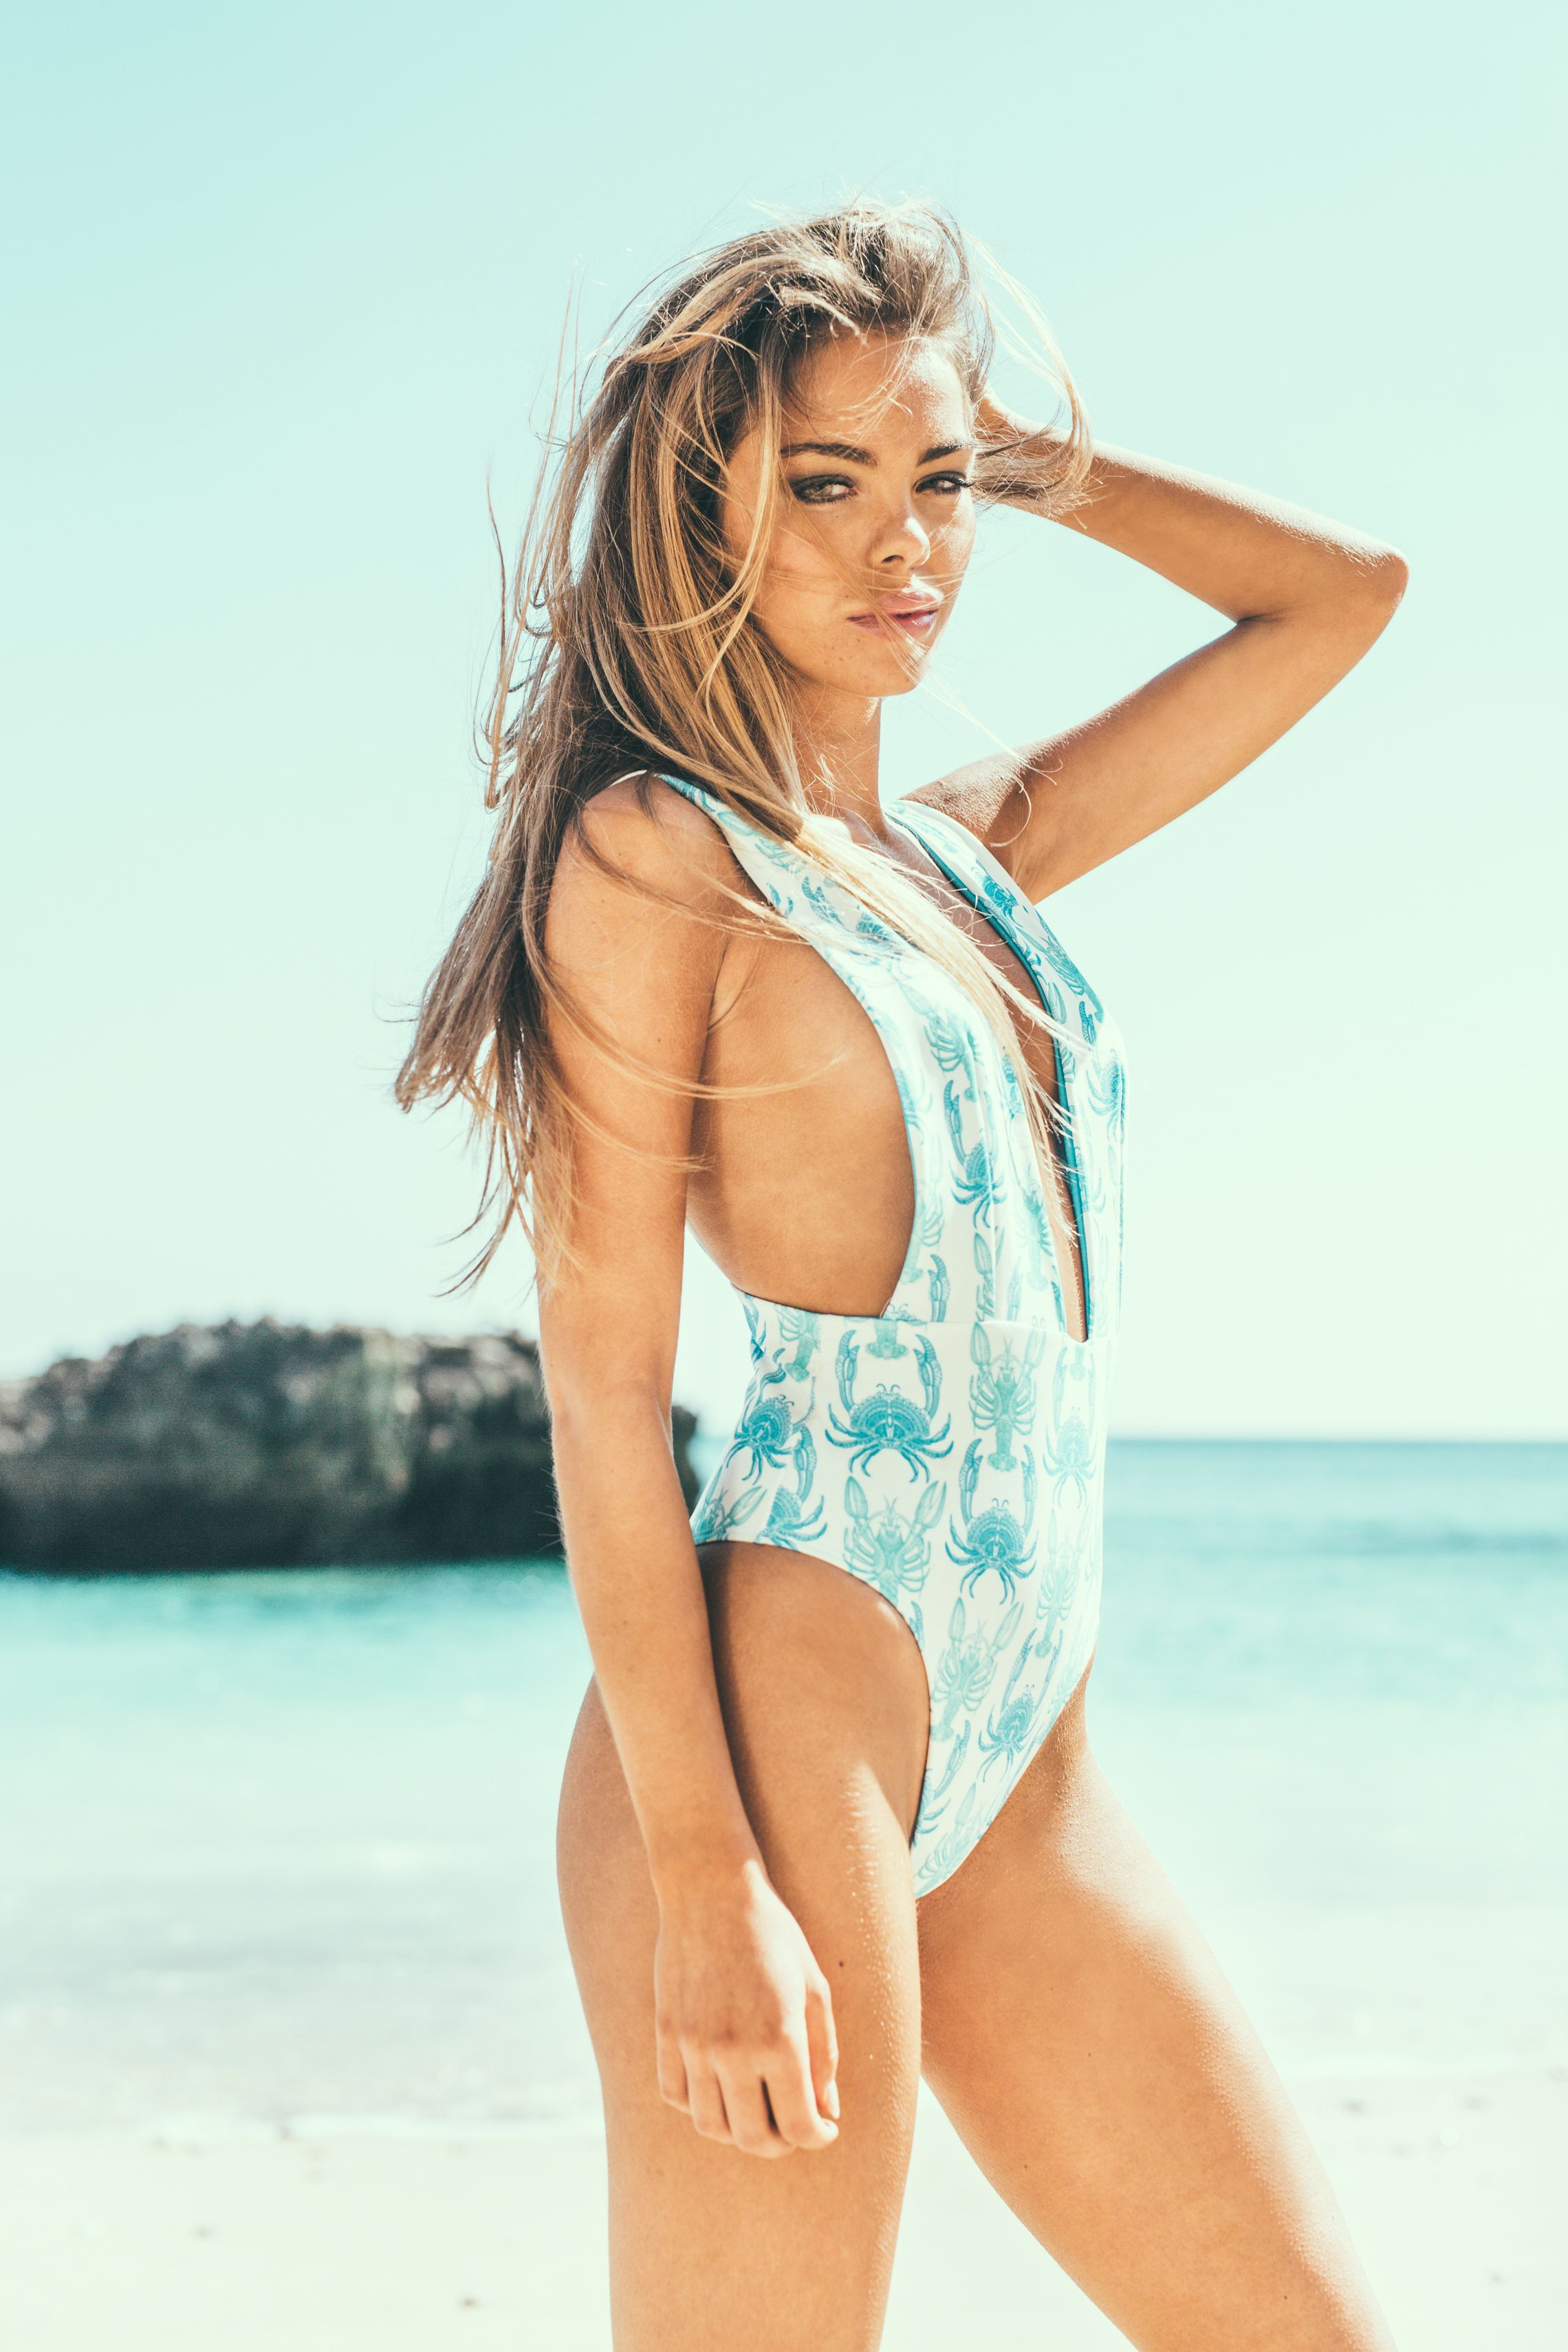 b50840863e2 Missus swimsuits (missusswimsuits) on Pinterest